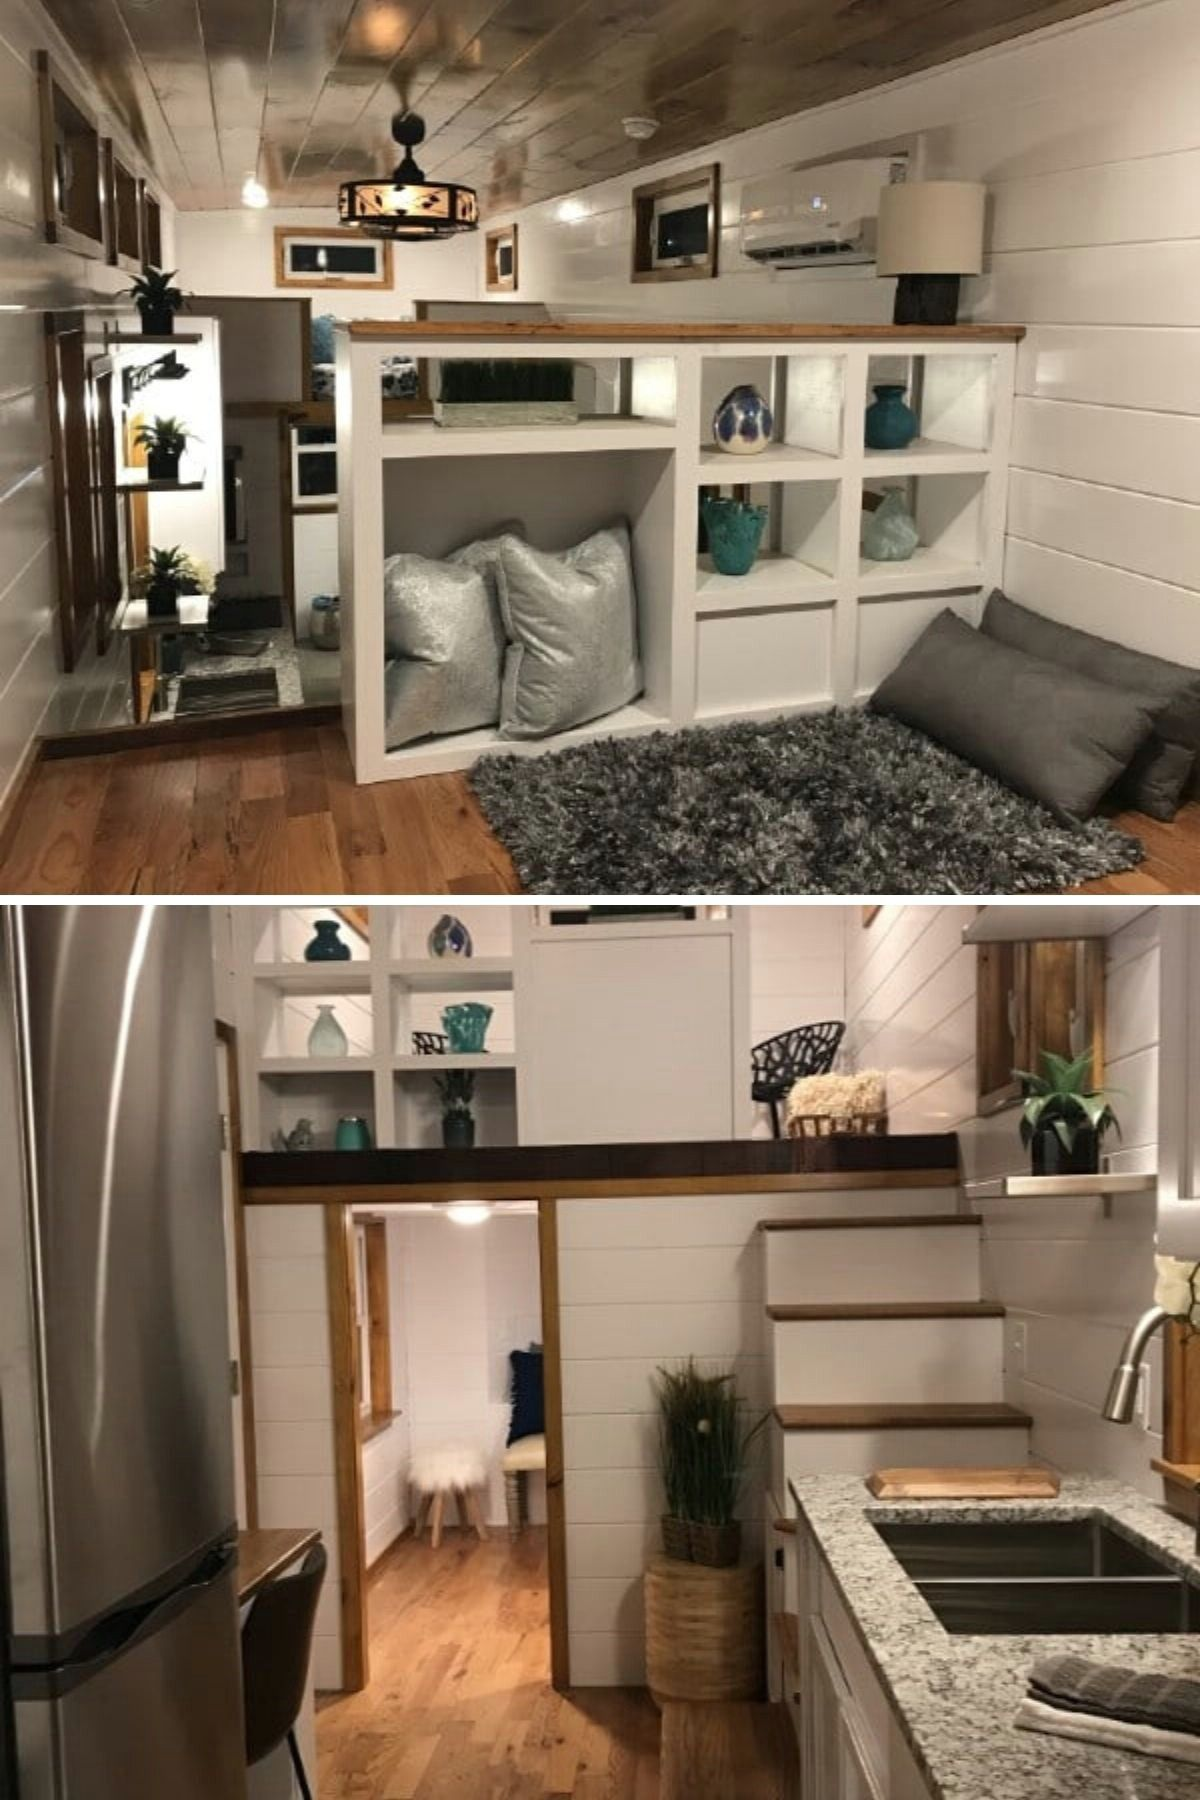 The best tiny house lofts with links to full house tours and builder or availability info! Check out the nicest lofts and find your dream tiny house today! #tinyhouse #tinyhouses #lofts #smallspaceliving